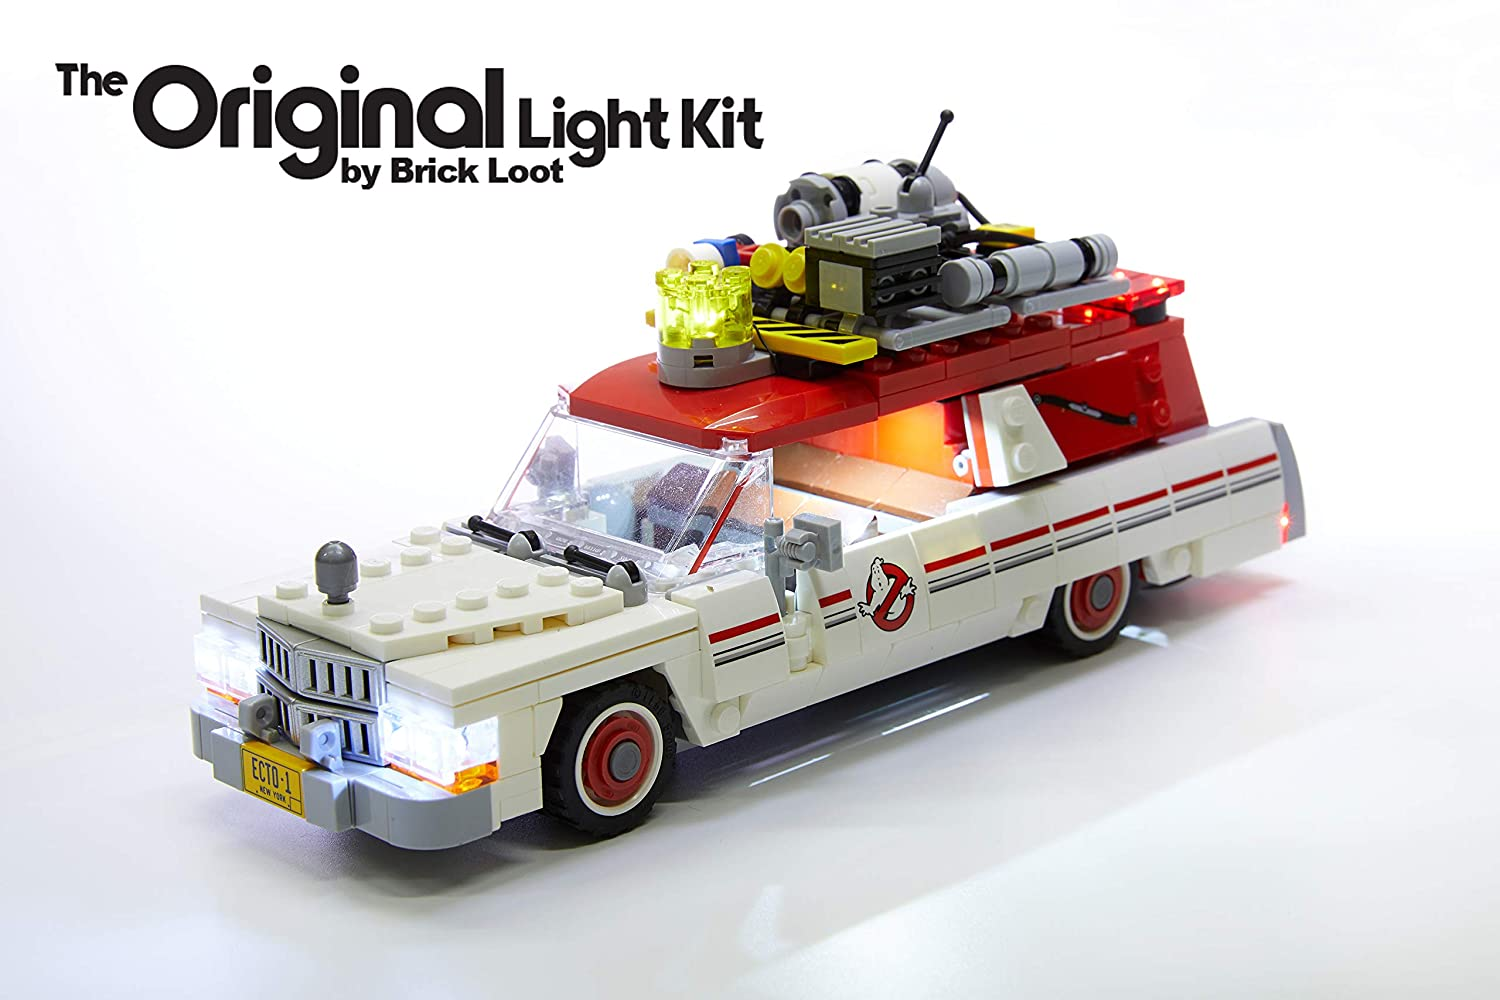 Brick Loot LED Lighting Kit for Lego Ghostbusters Ecto 1 & 2 - 75828 (Lego Set NOT Included)